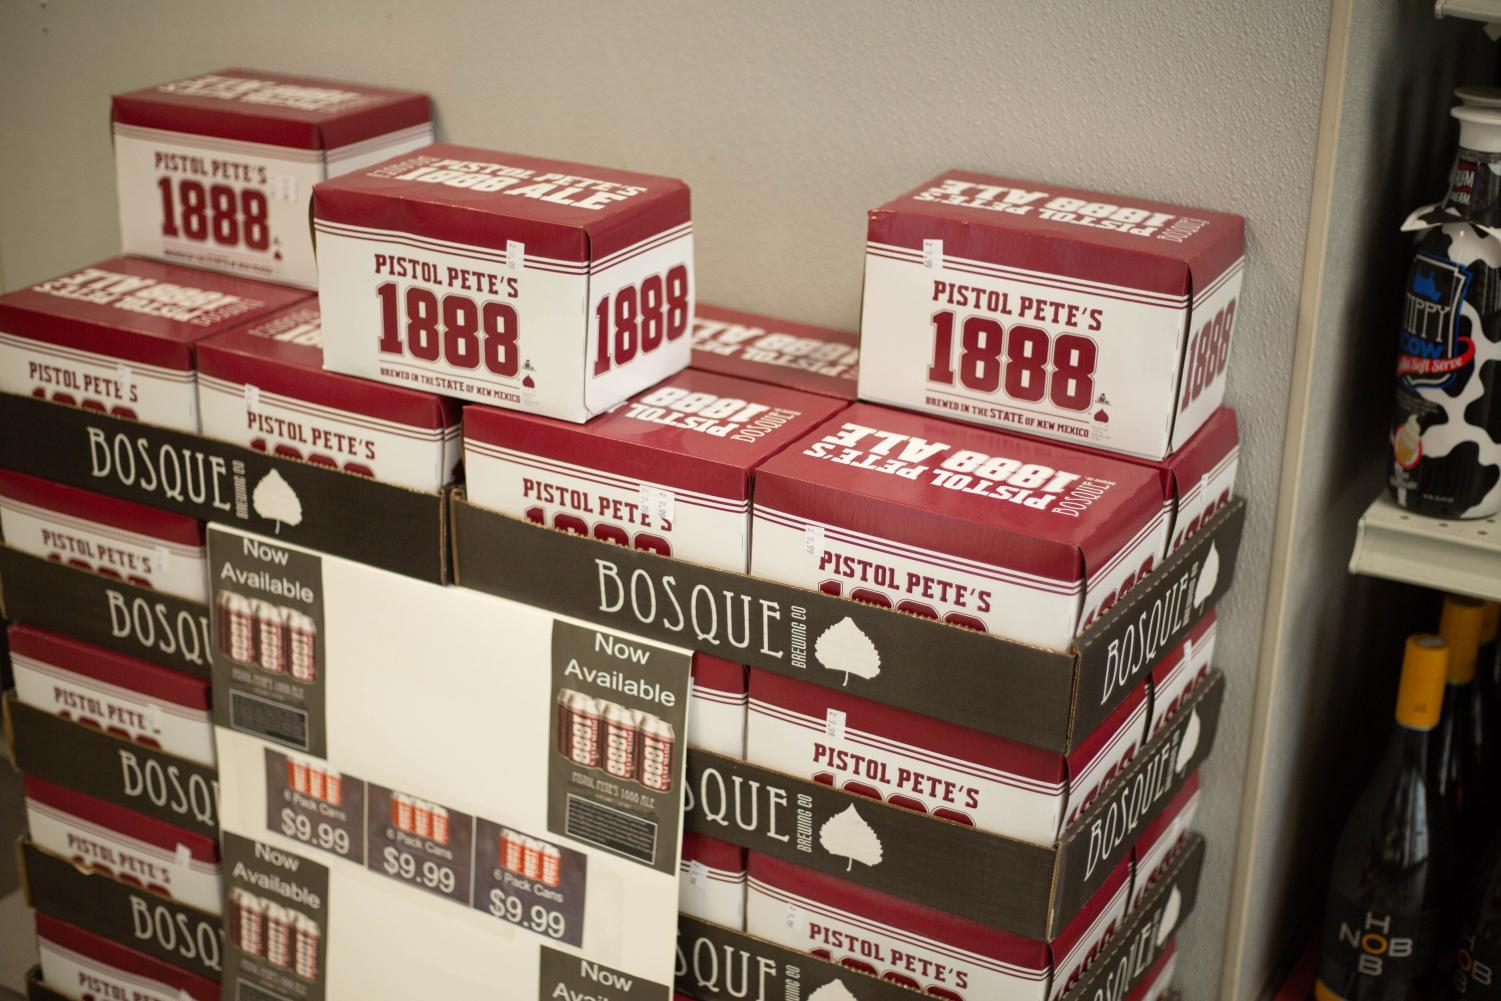 Pete's 1888 Ale is available at Pic Quik, Toucan Market, Celebrate and other locations in Las Cruces.